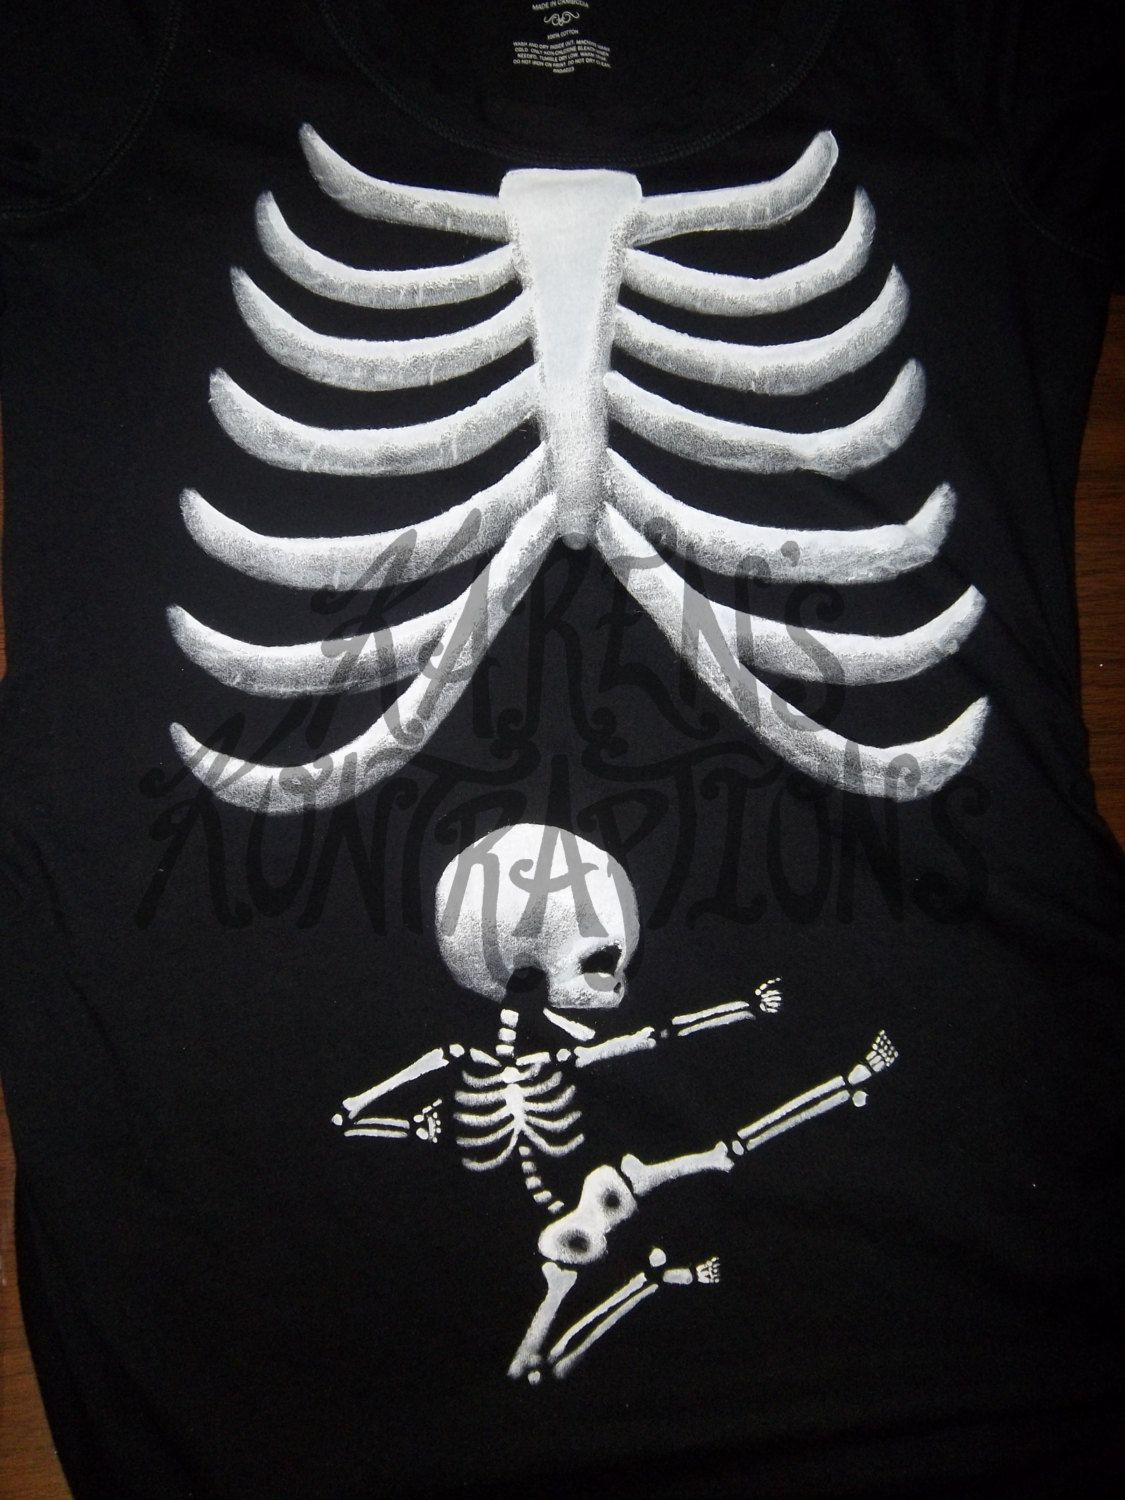 ed3d3185606d8 Ninja Baby! This Is Exactly What I Feel Like Is Going On On There! image  number 2 of skeleton maternity costume ...